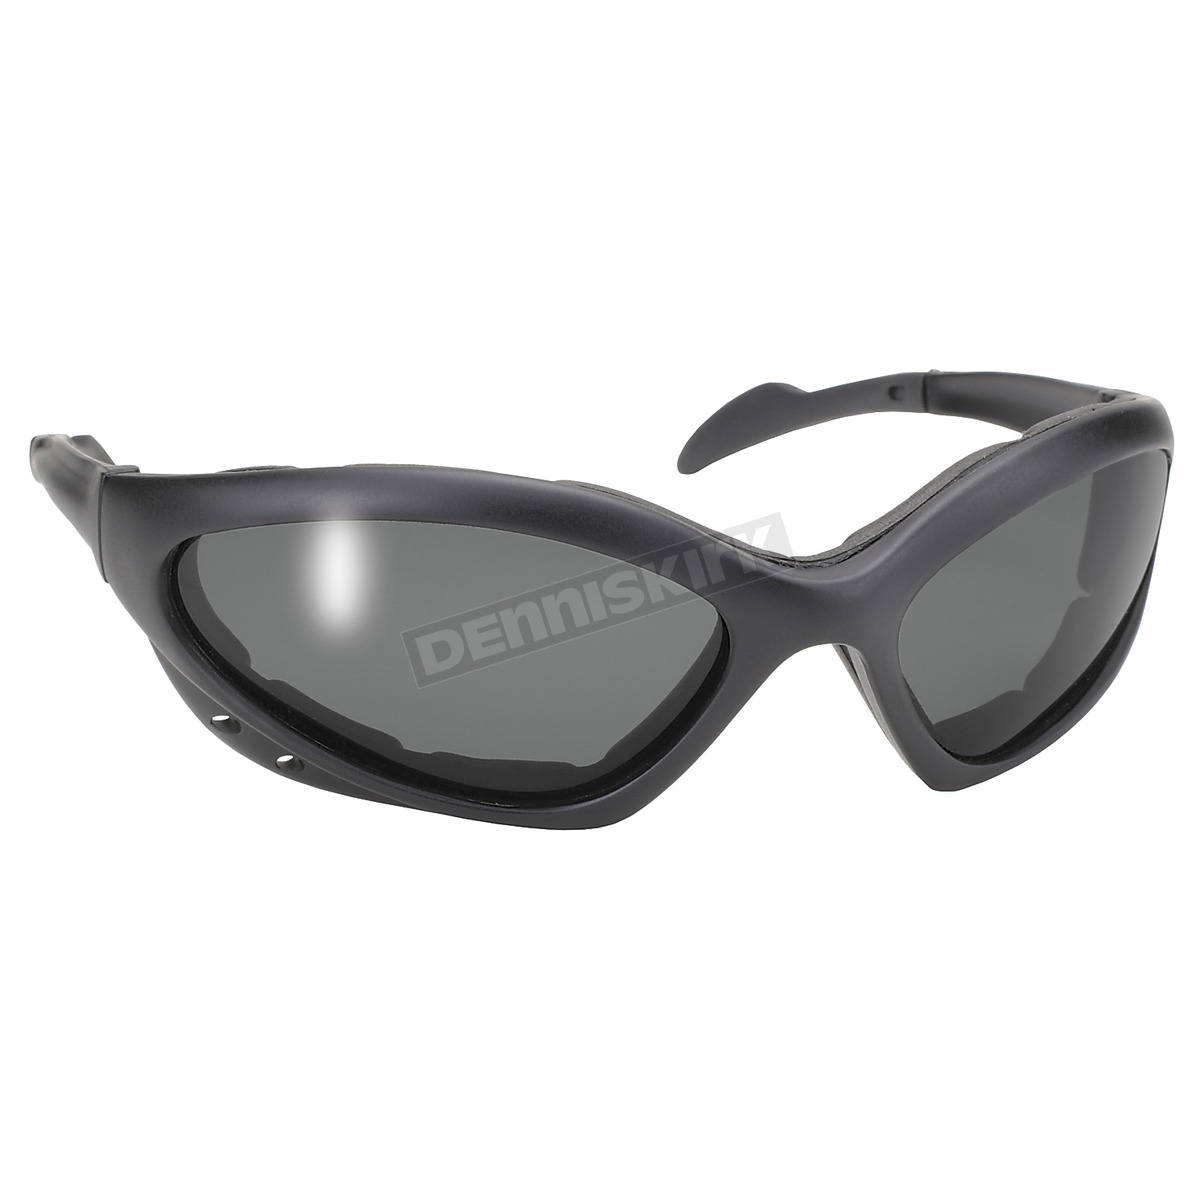 kickstart eyewear navigator sunglasses w polarized gray